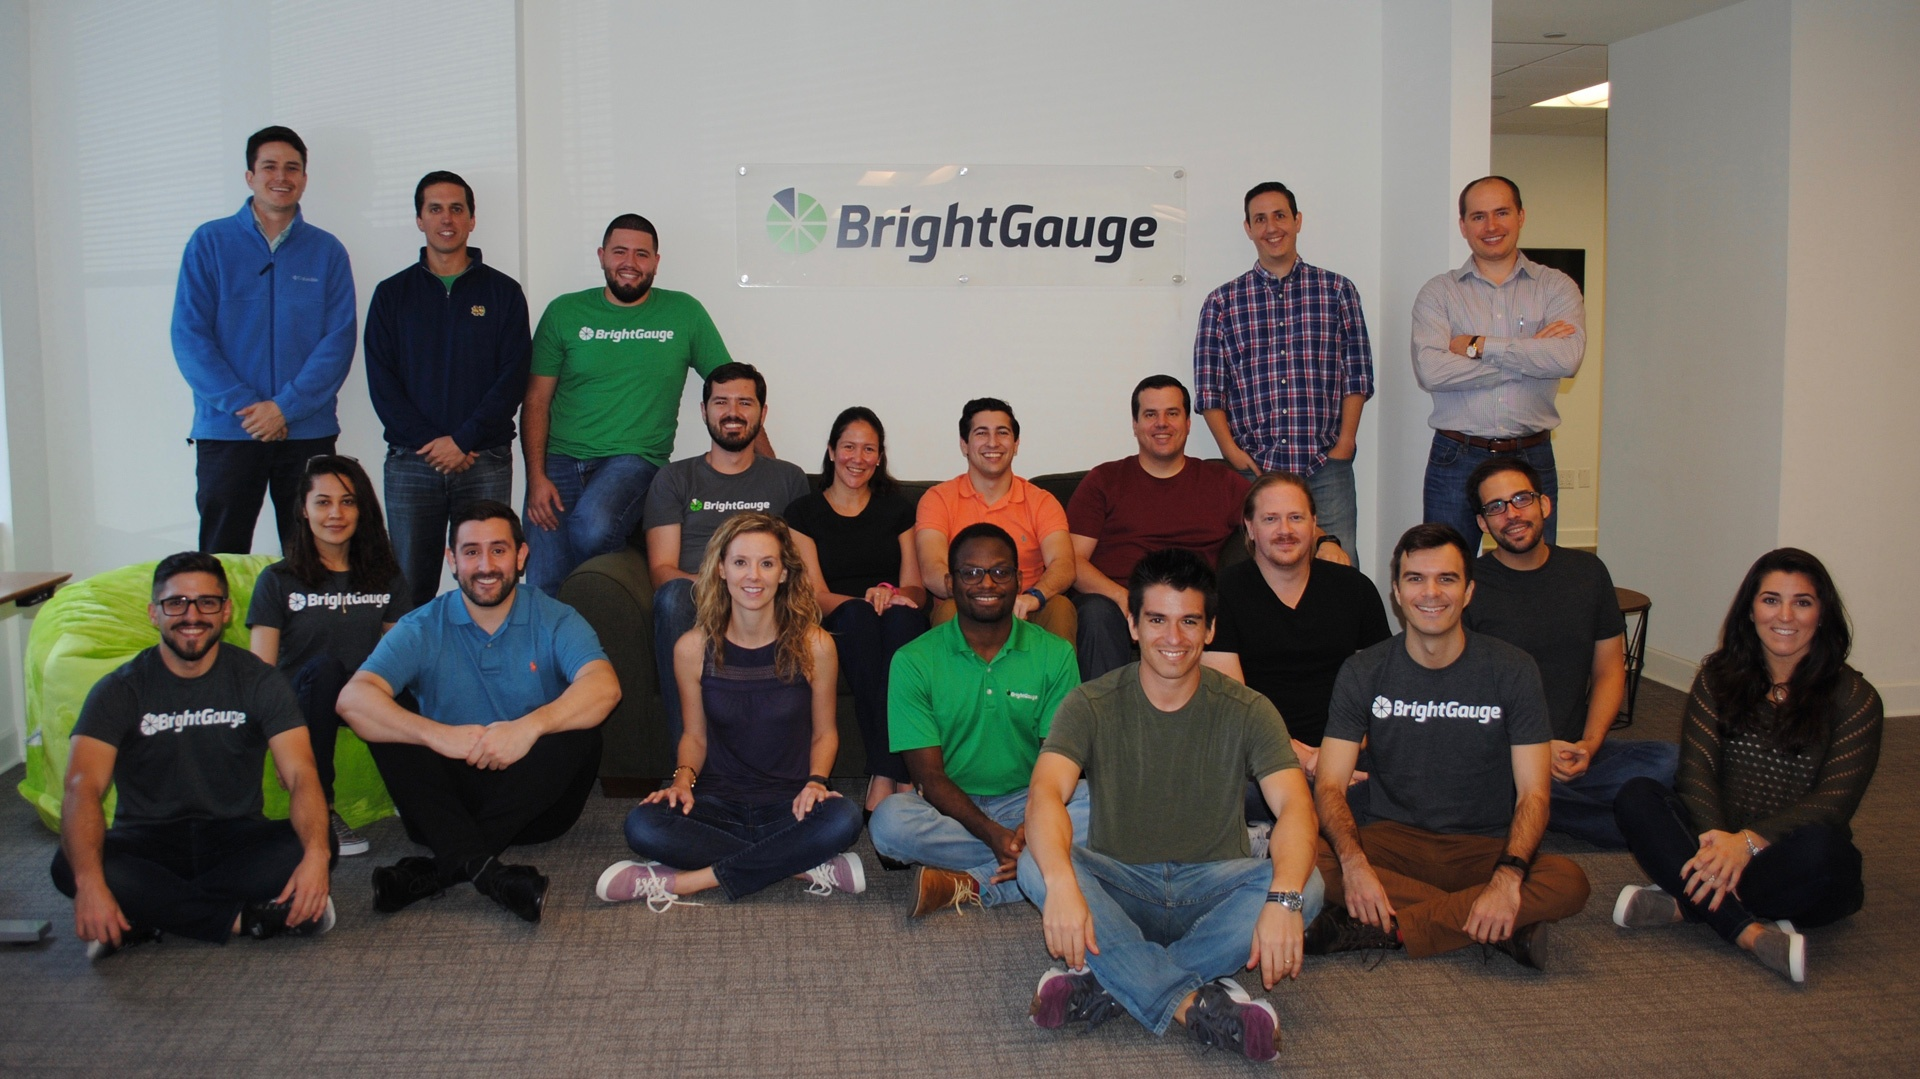 Amanda McCluney joins BrightGauge as Marketing Coordinator